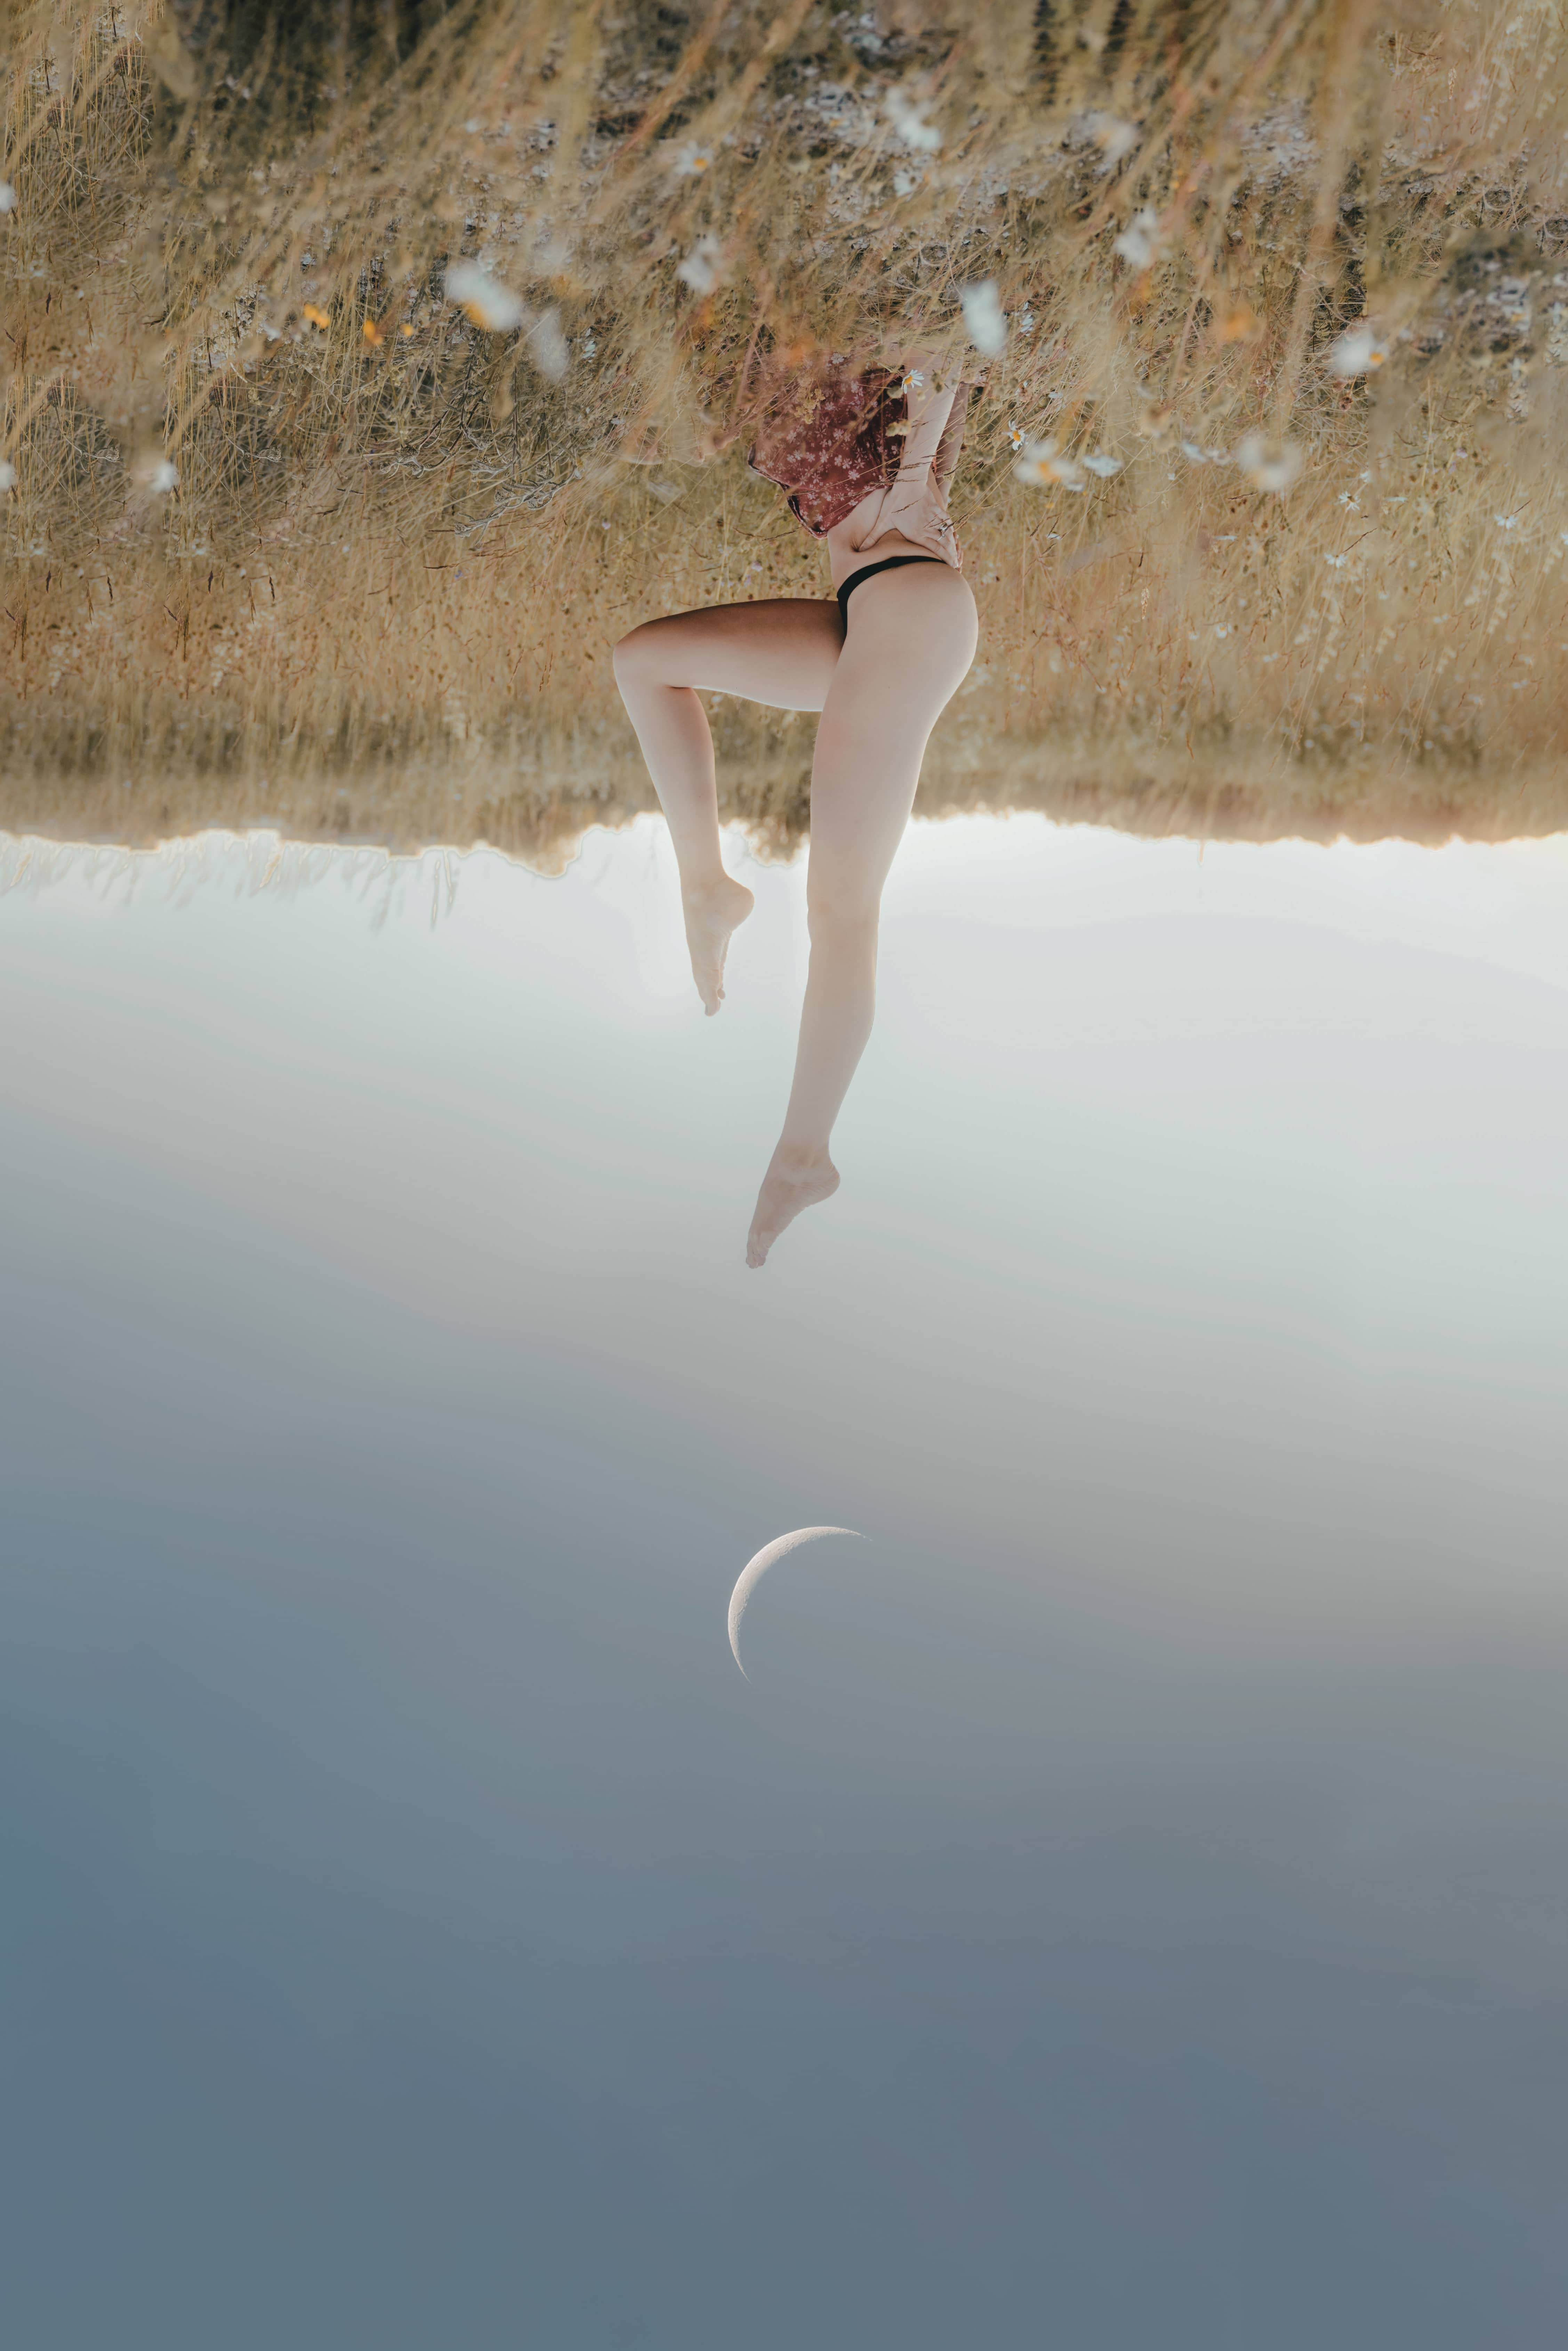 girl with no pants on laying upside down in a grass field while the half moon is rising in the background